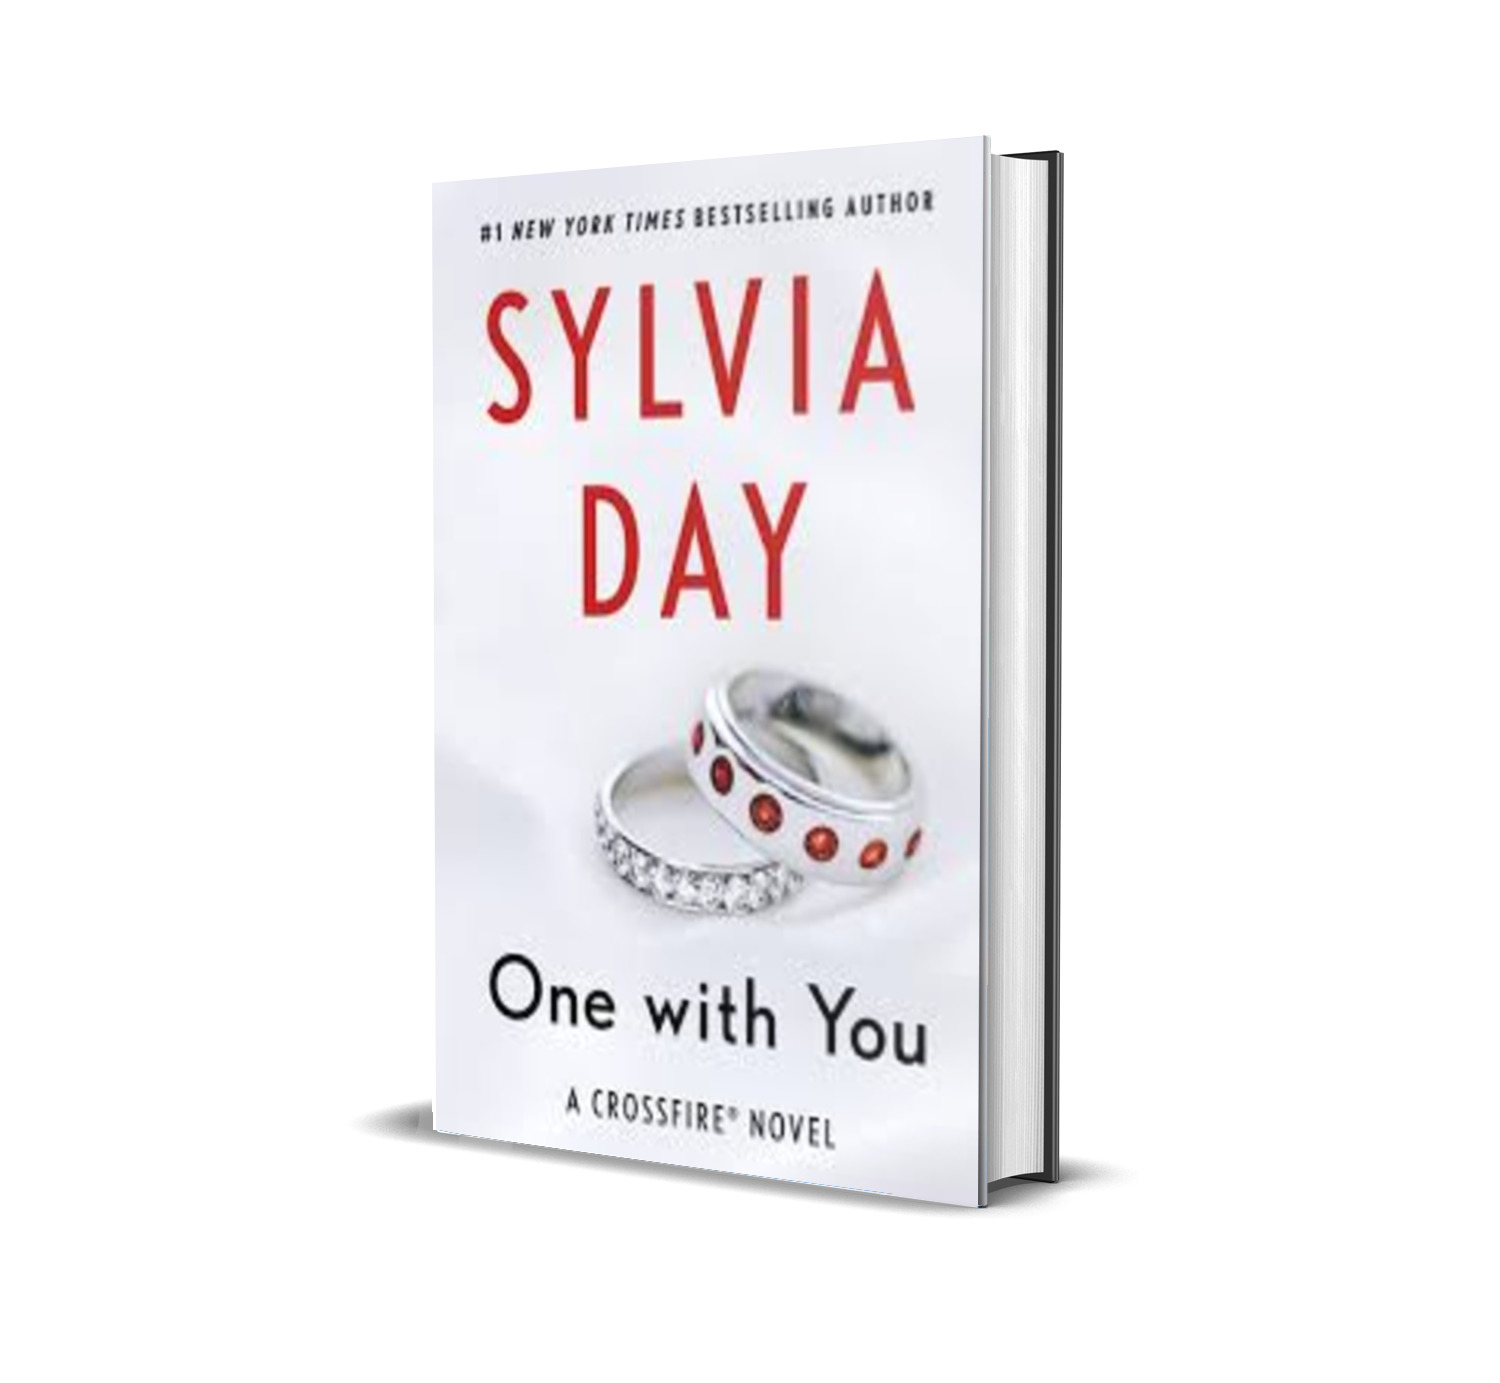 One with You - Sylvia Day [Crossfire 5]